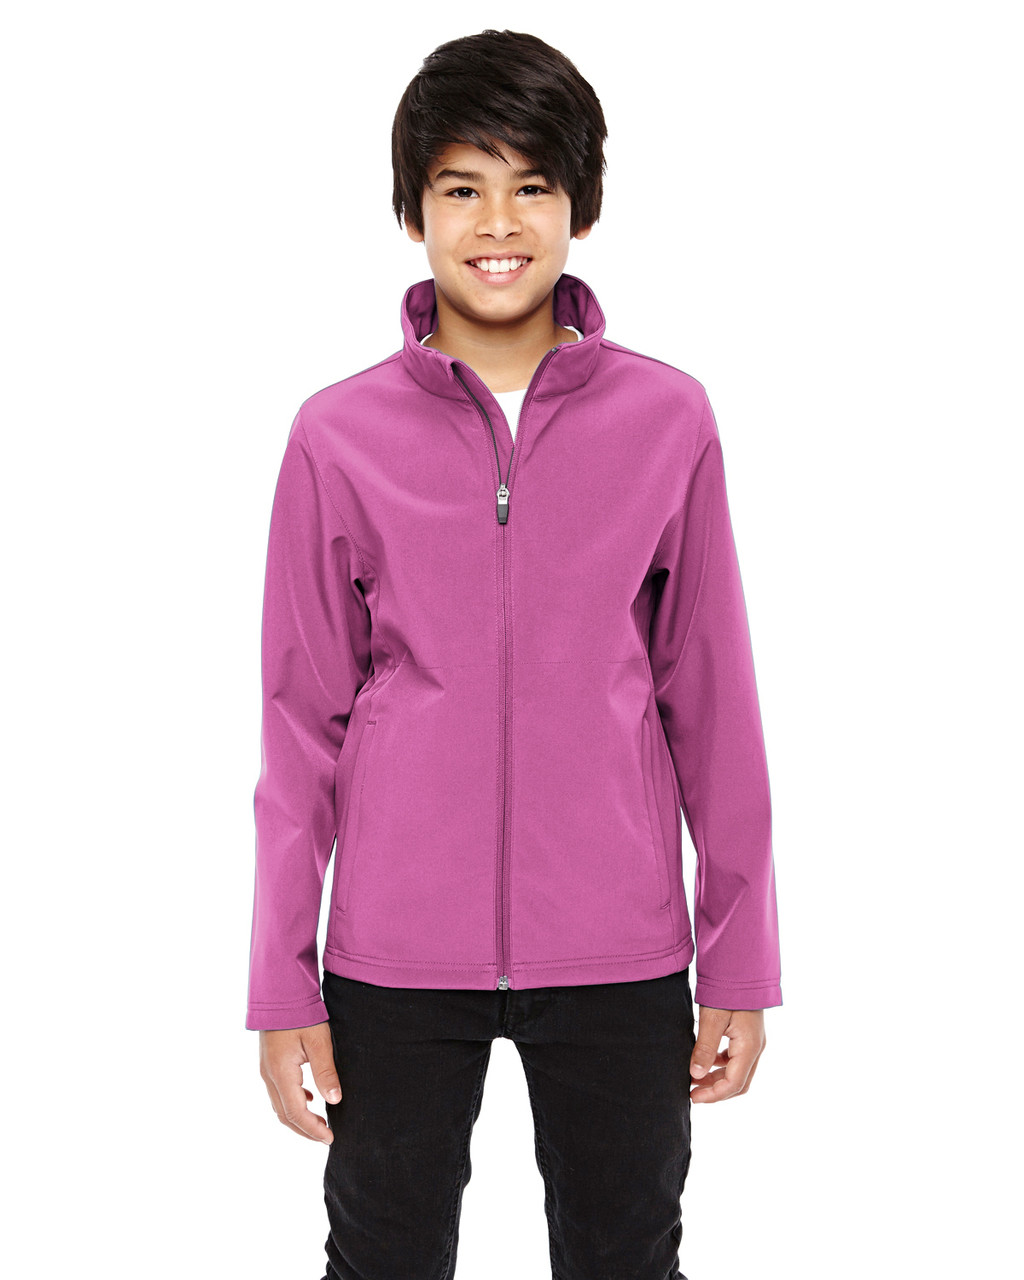 Sport Charity Pink  - TT80Y Team 365 Youth Leader Soft Shell Jacket | BlankClothing.ca